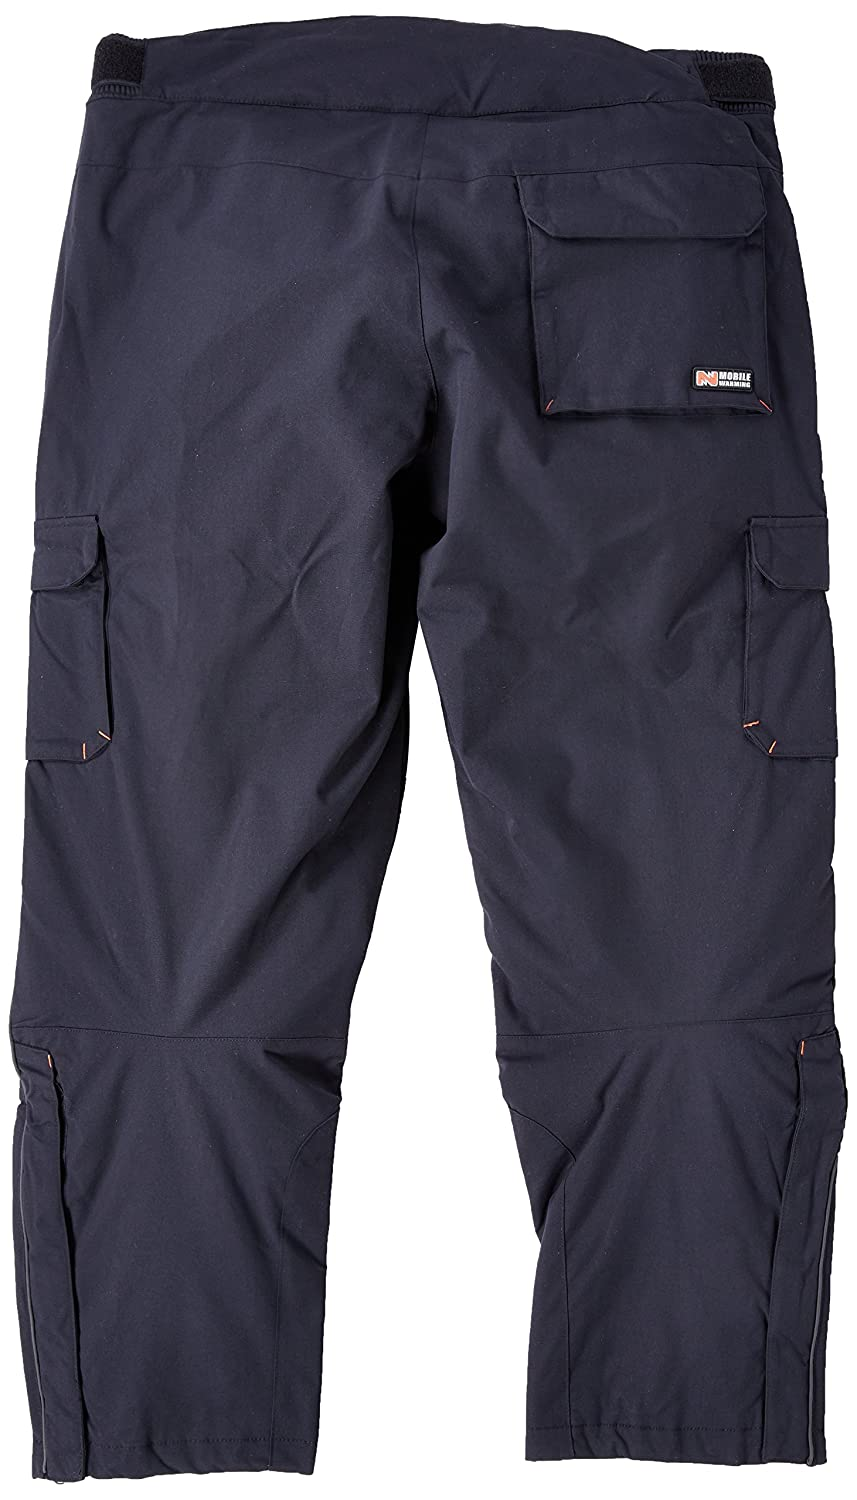 Amazon.com: Mobile Warming - Pantalones unisex para adulto ...